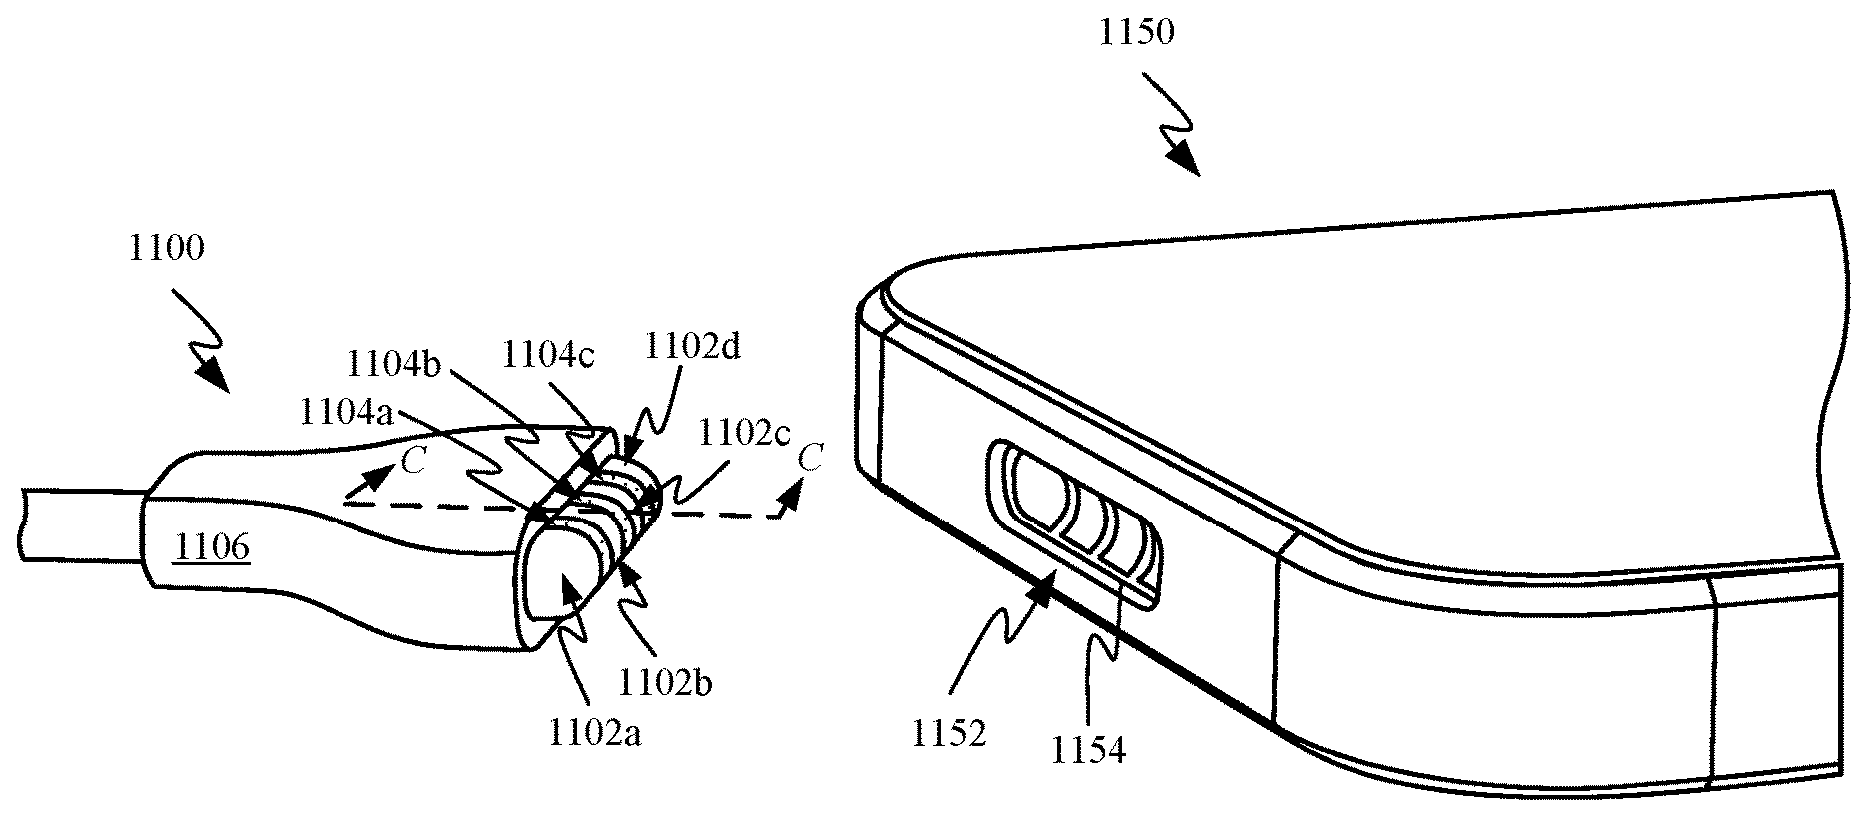 A drawing from Apple's MagSafe patent showing a magnetic iPhone port in place of Lightning